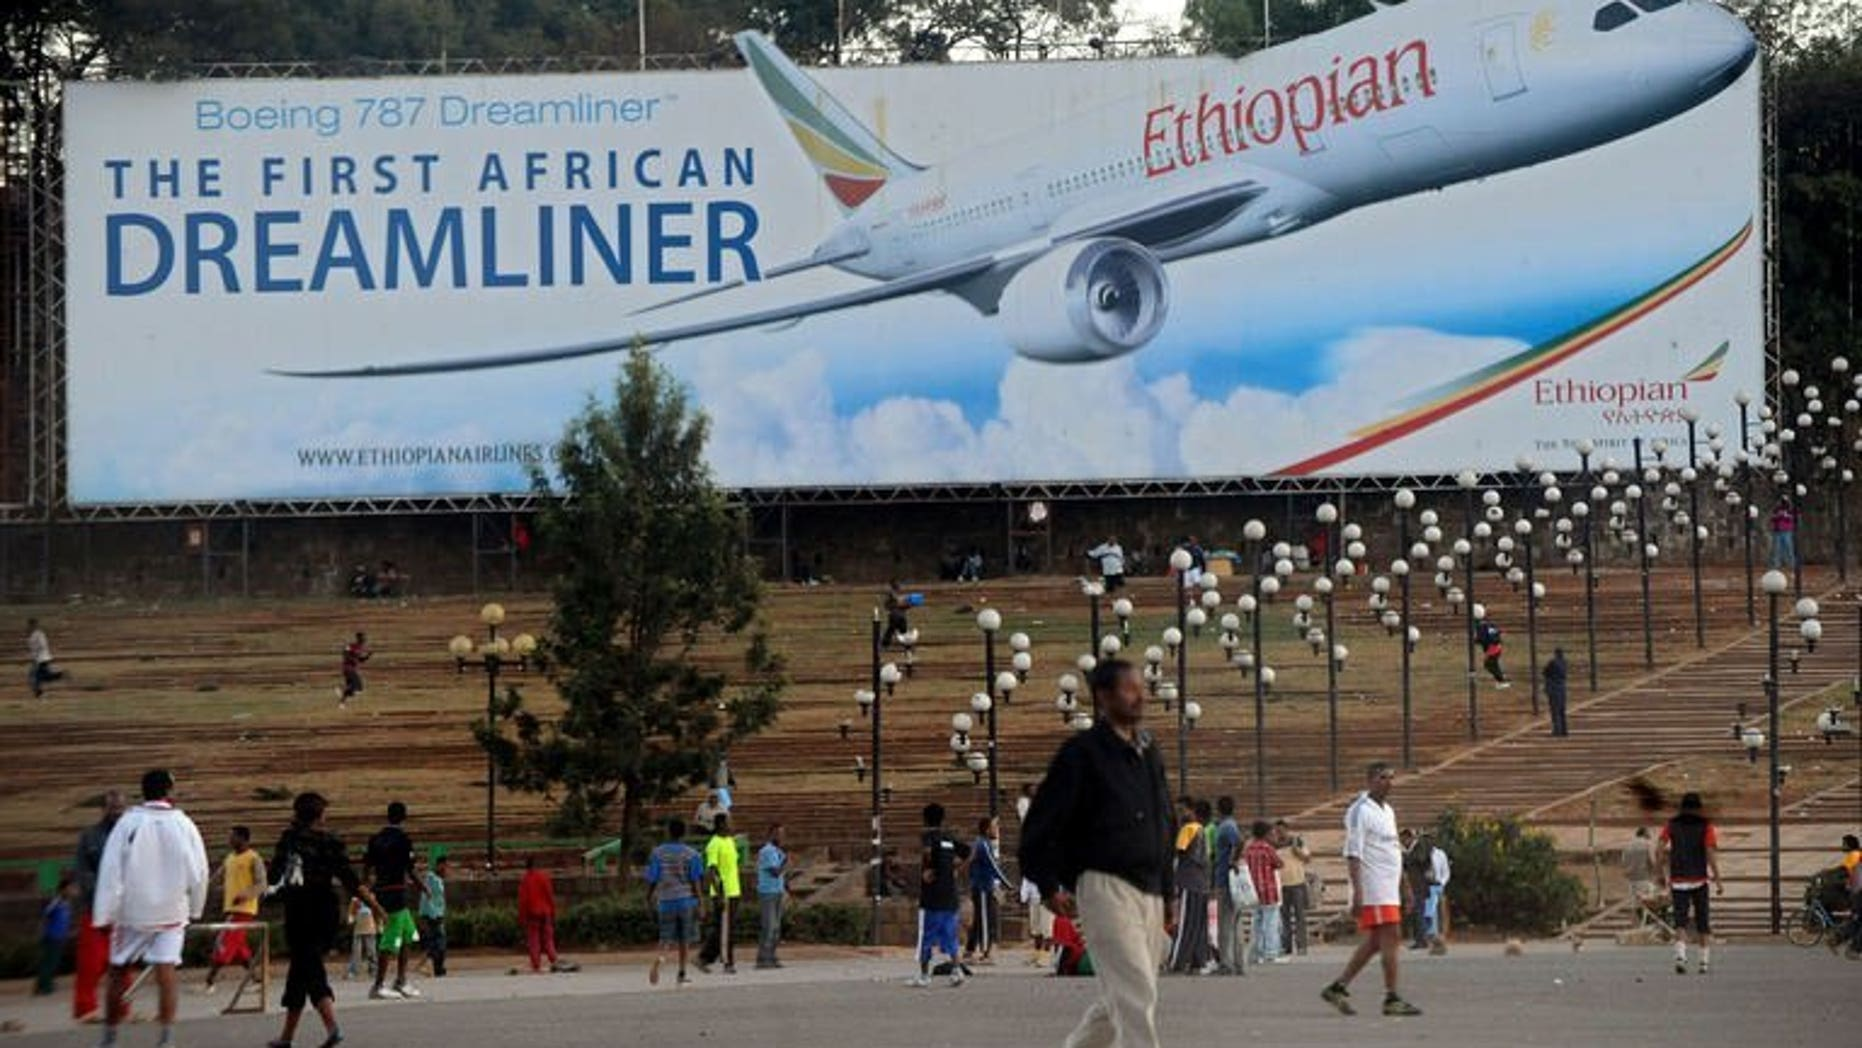 Picture dated January 27, 2010 shows people walking past a billboard in Addis Ababa showing an Ethiopian Airlines Boeing 787 Dreamliner plane. British investigators said Tuesday they were examining a transmitter made by US group Honeywell as part of a probe into a fire on an Ethiopian Airlines Dreamliner jet at London's Heathrow Airport.